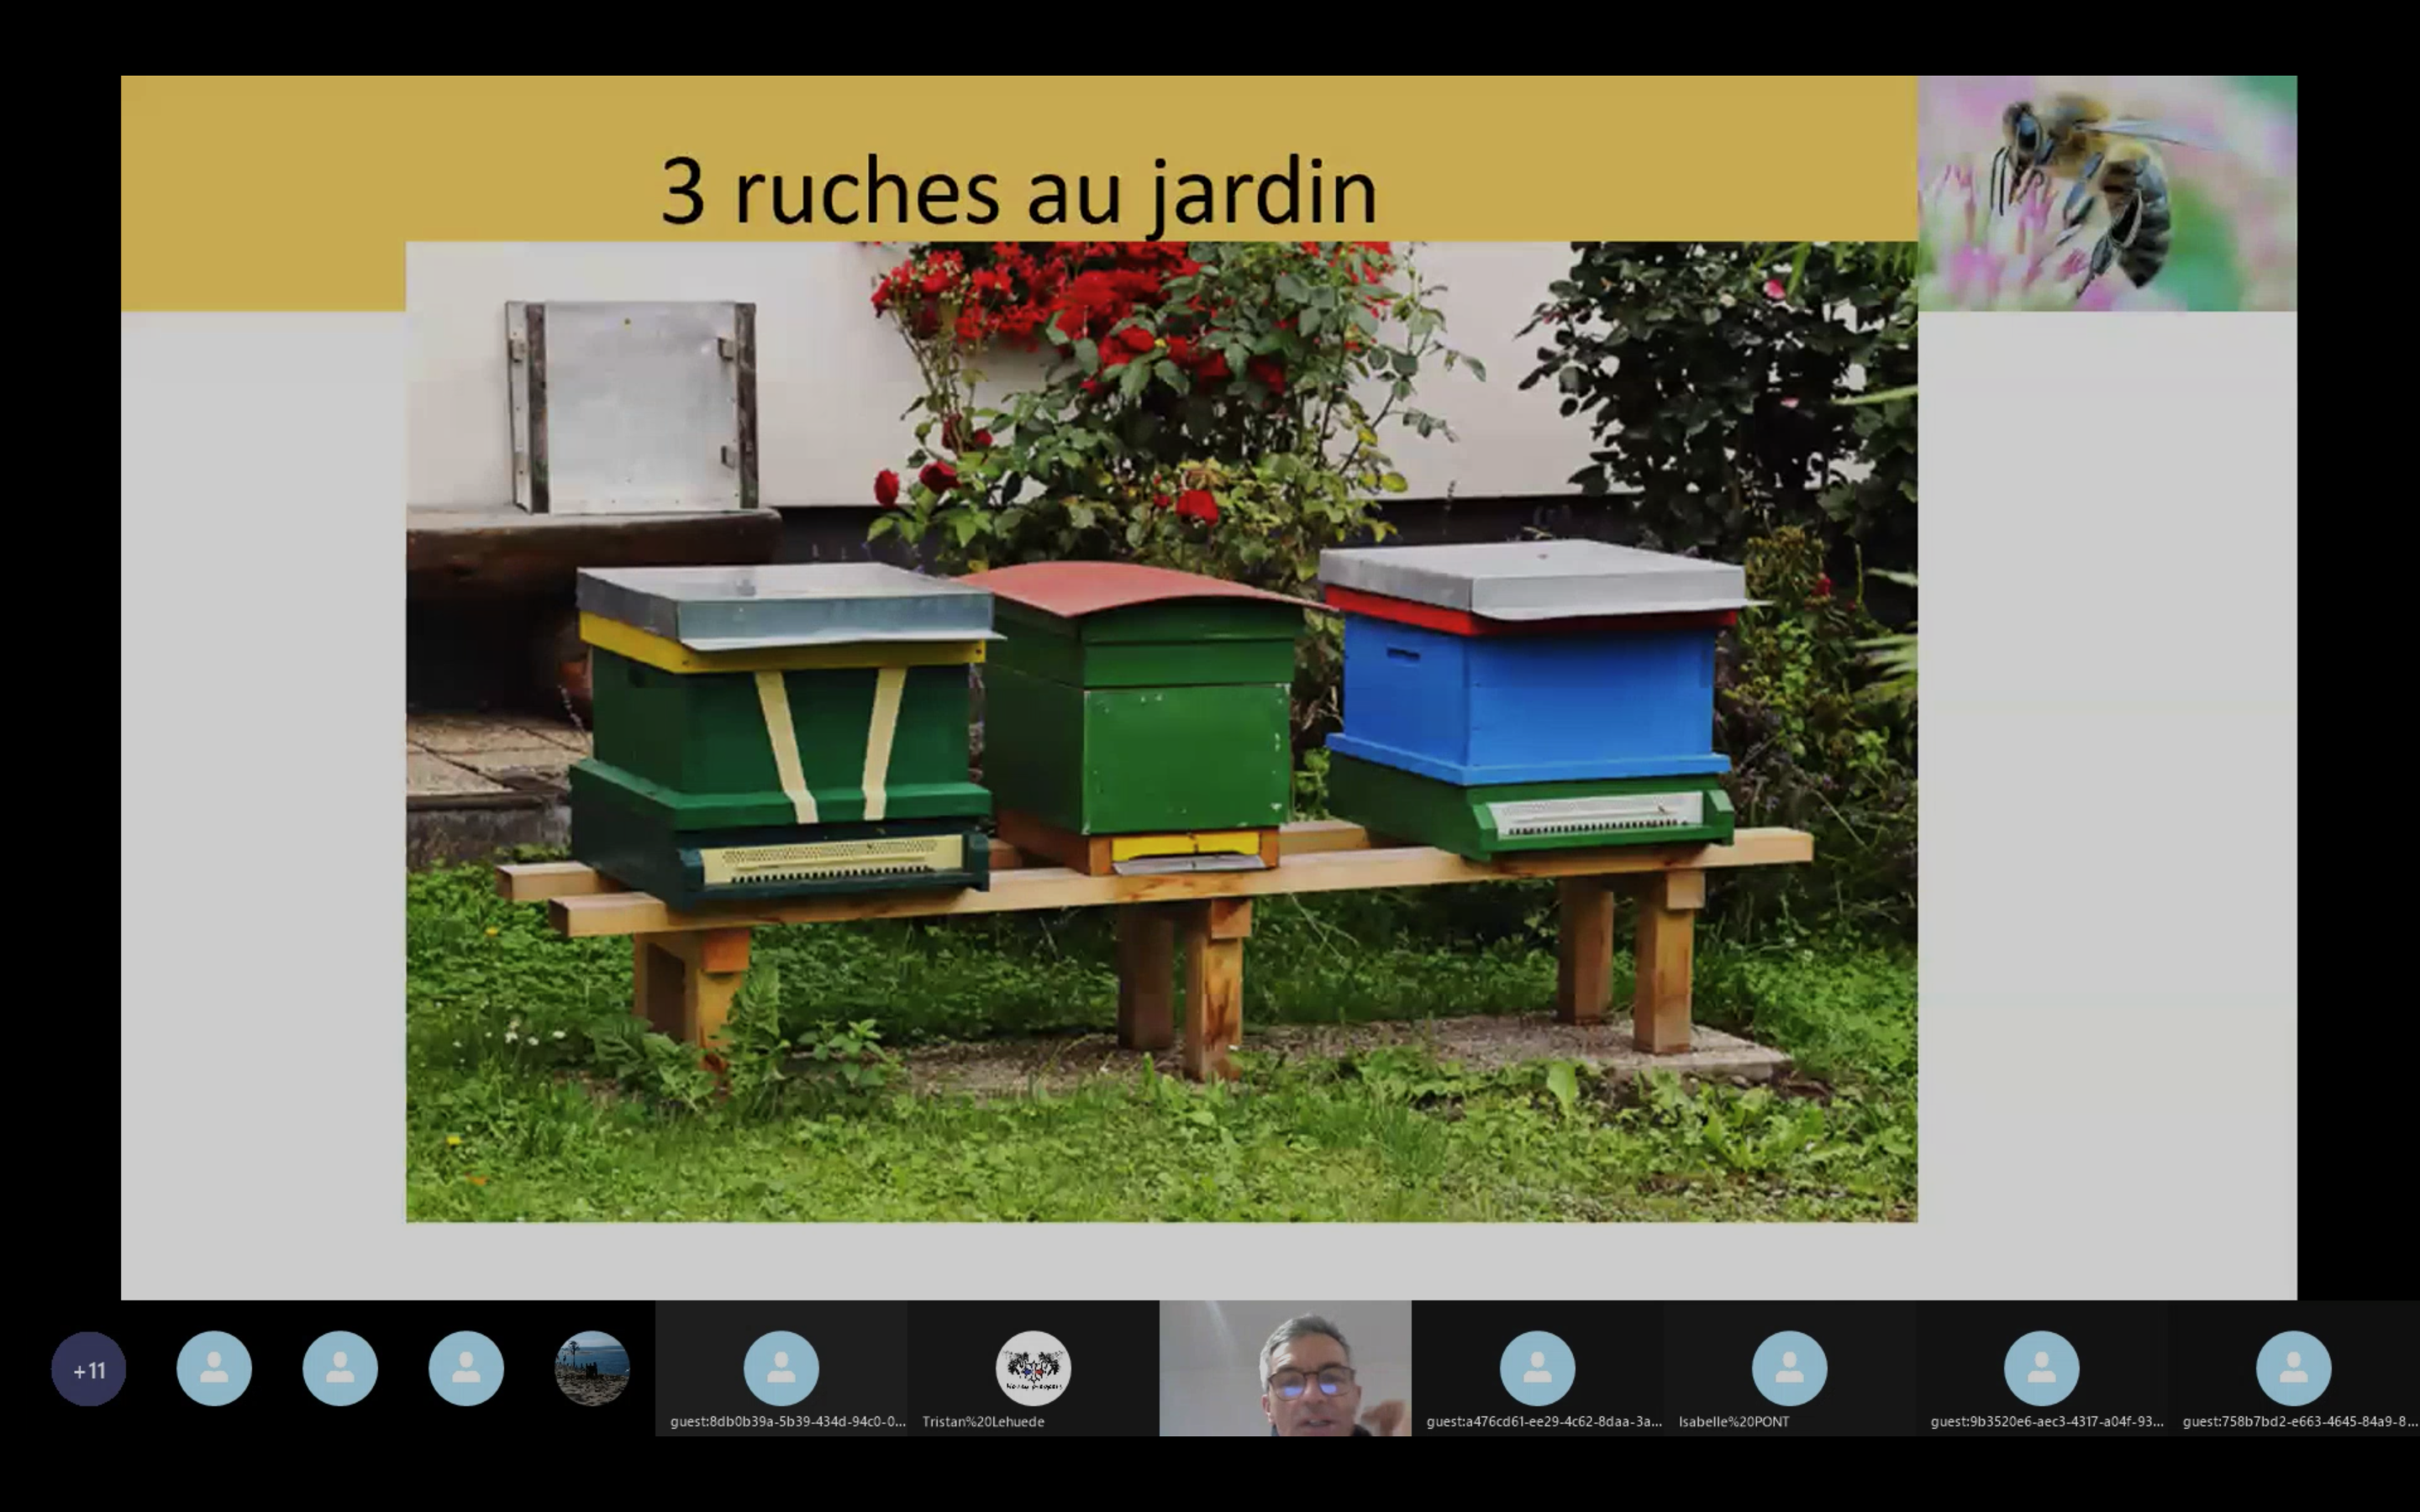 Visioconférence Philippe 3 ruches au jardin